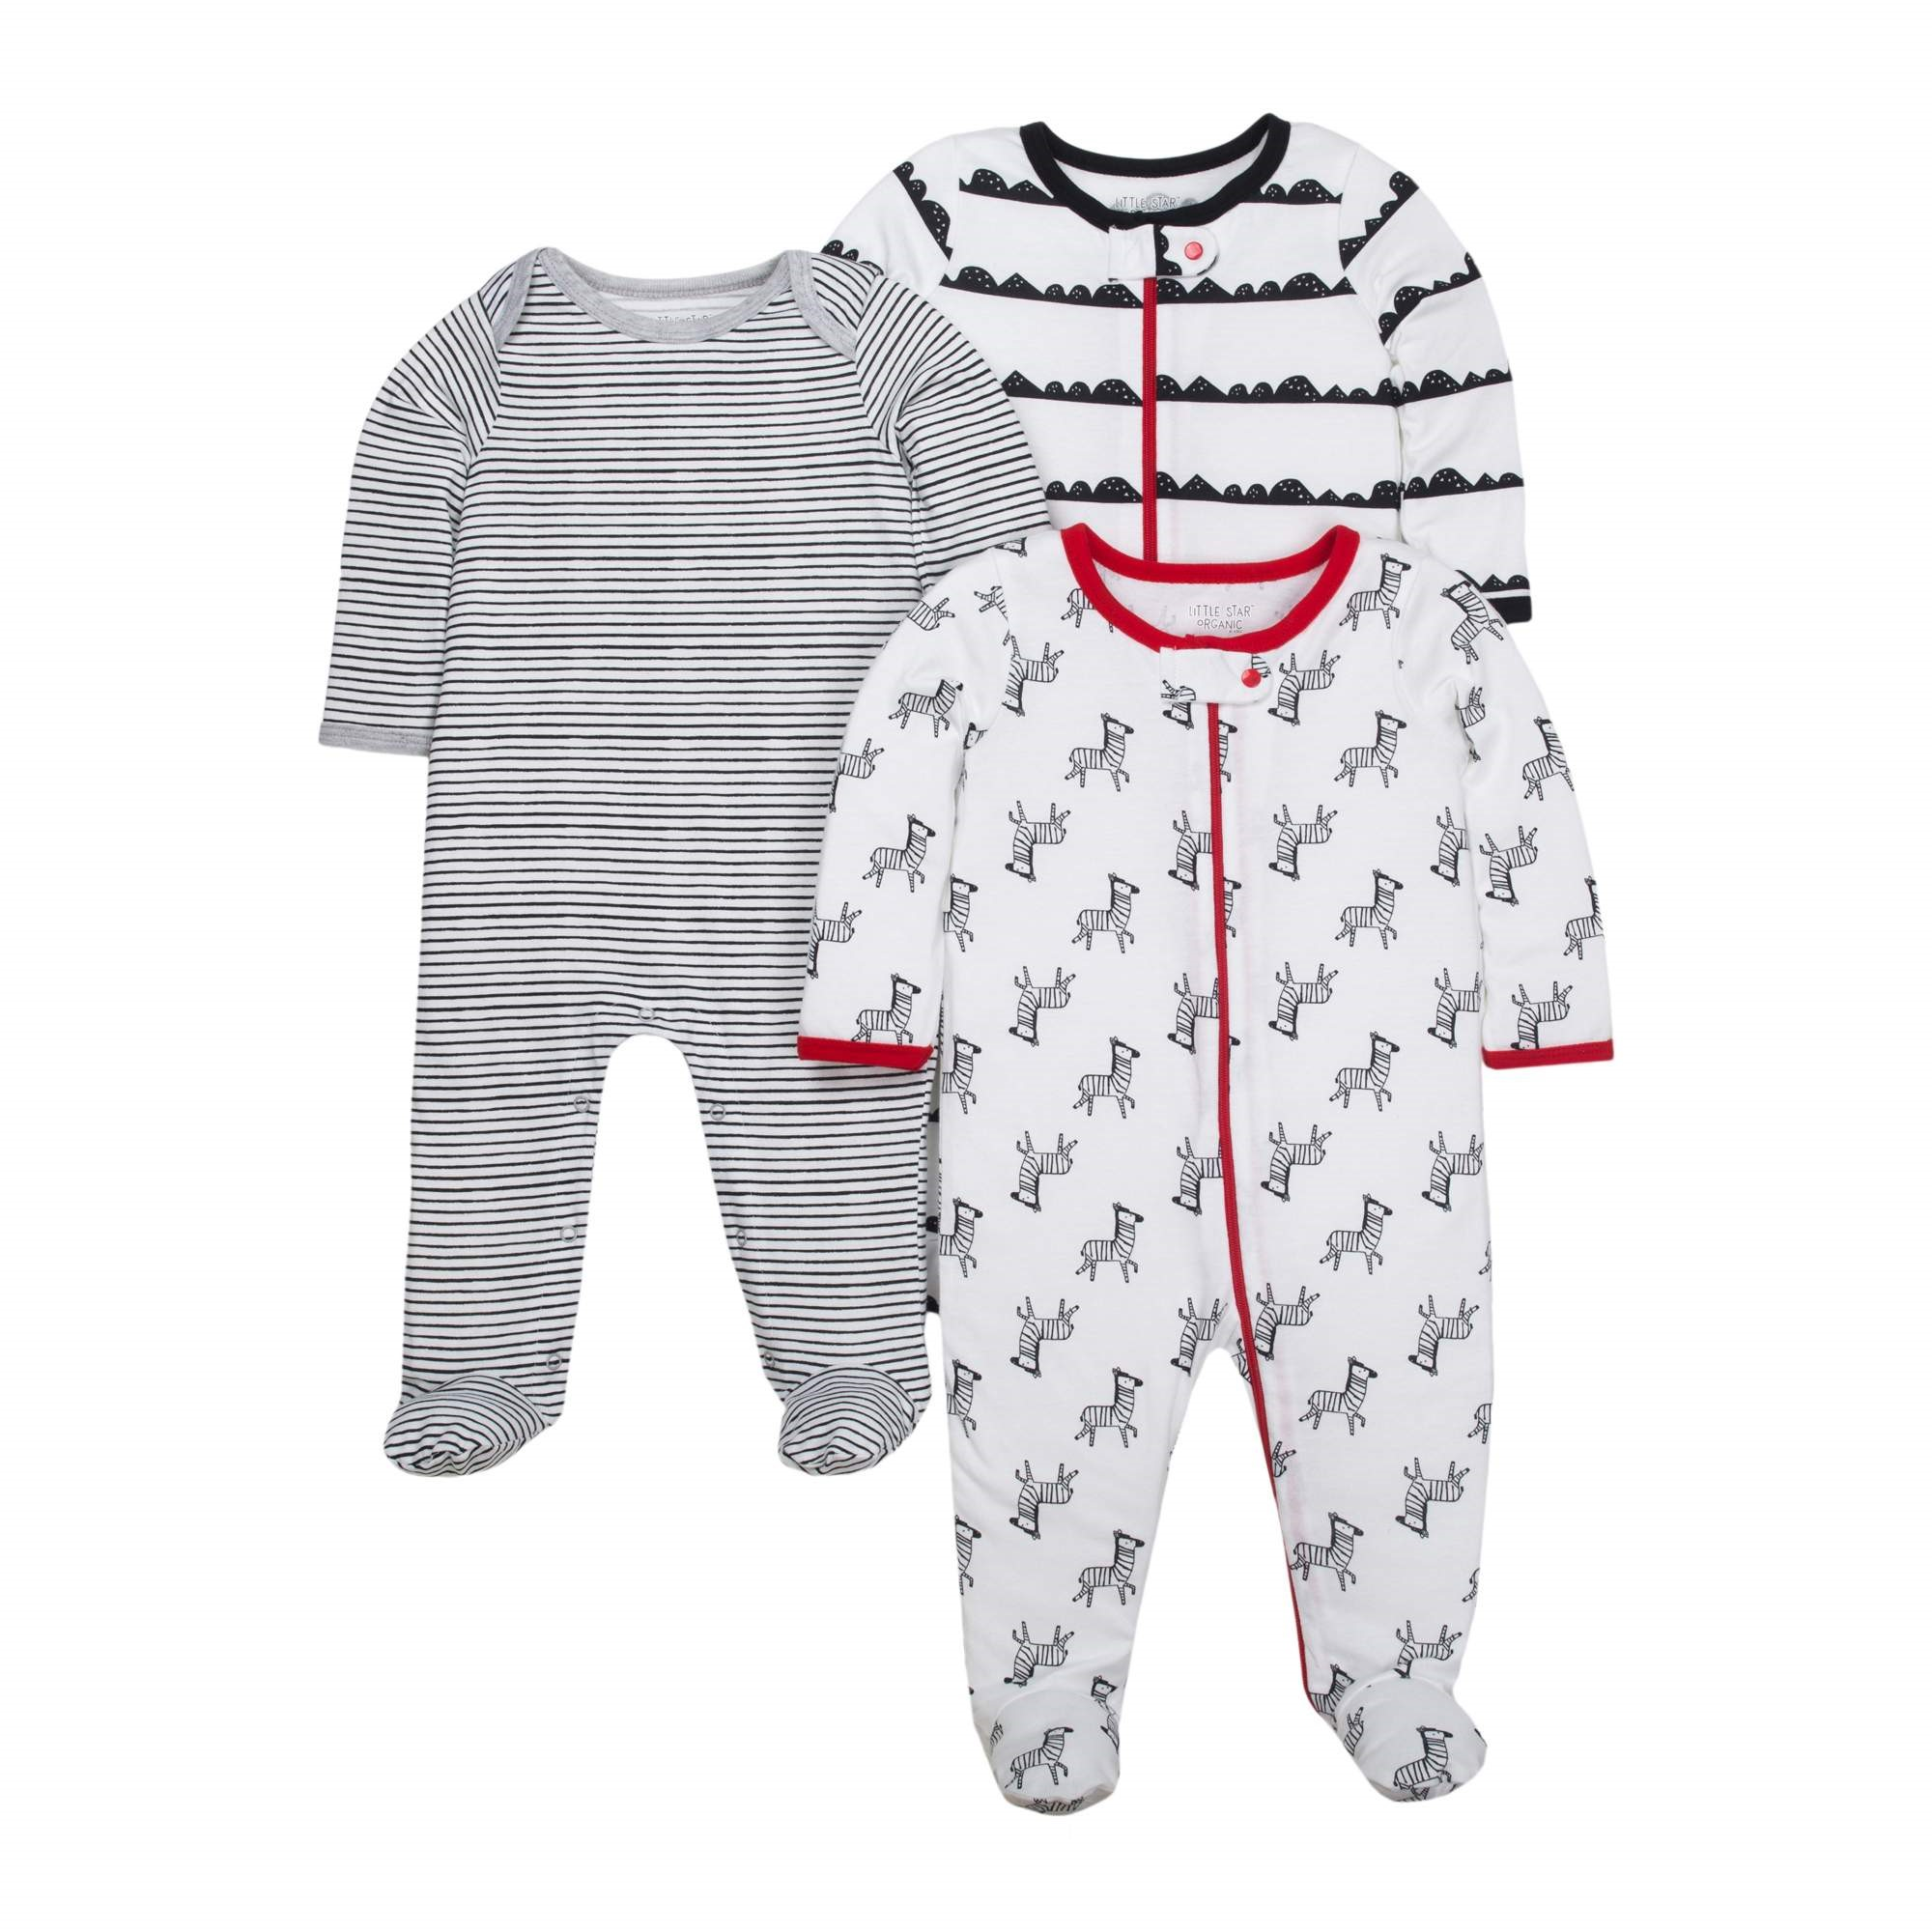 Hello Ladies 8-Piece Hudson Baby Boy Grow With Me Clothing Gift Set